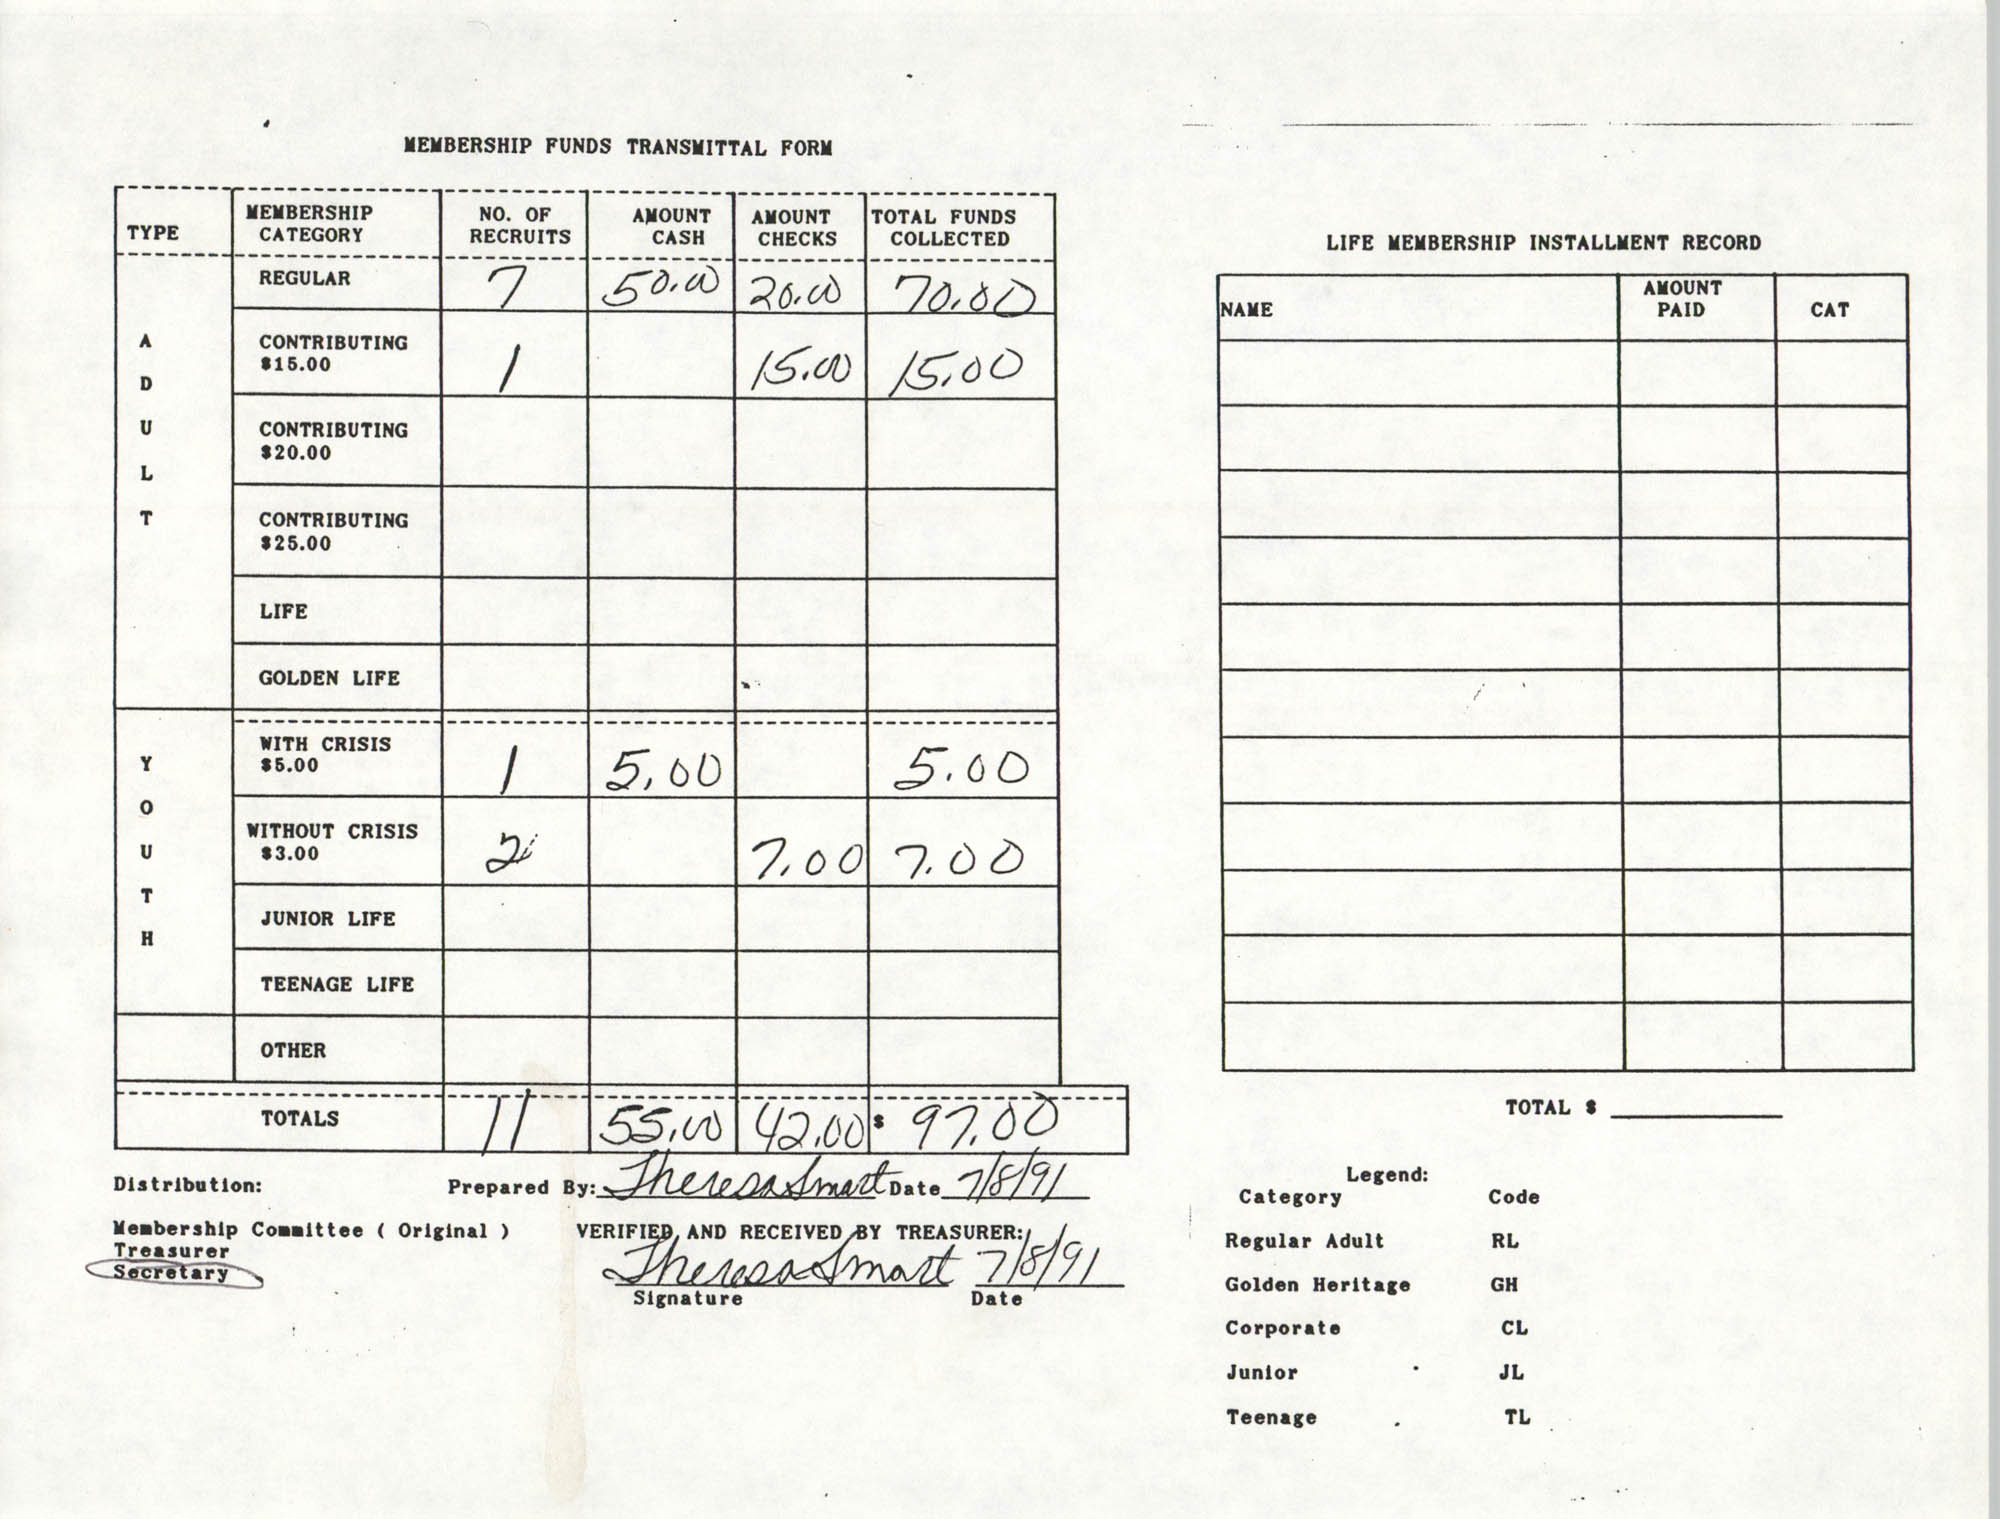 Charleston Branch of the NAACP Funds Transmittal Forms, July 1991, Page 2